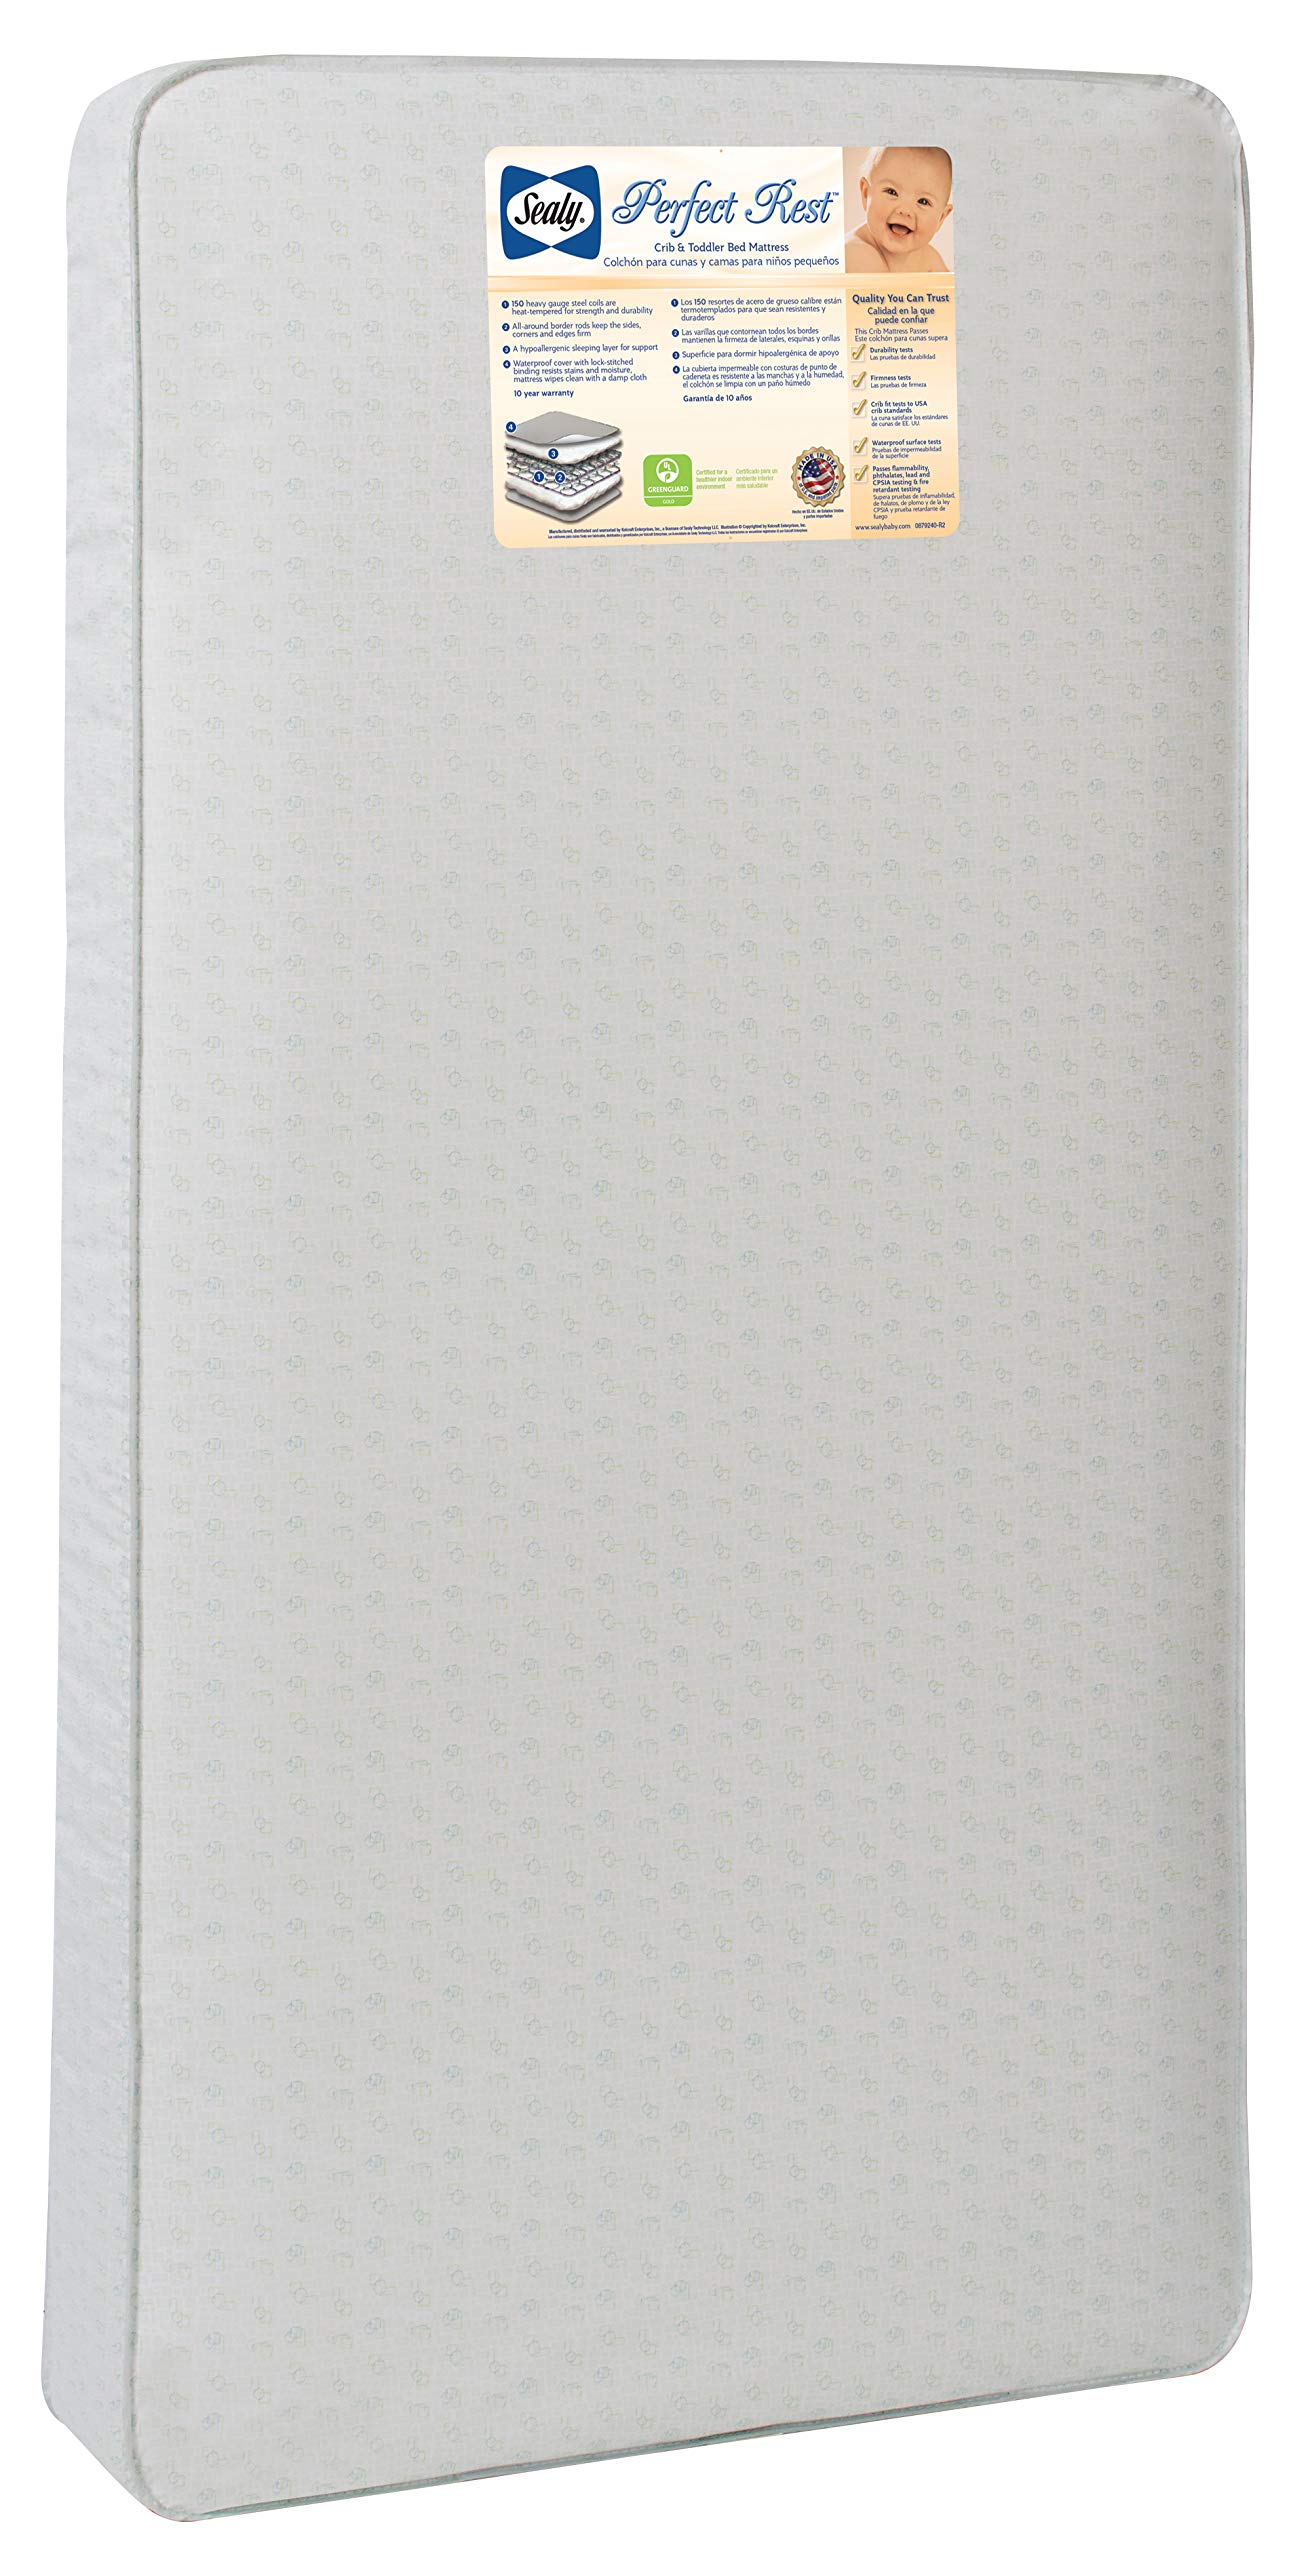 Sealy Perfect Rest Waterproof Toddler & Baby Crib Mattress - 150 Extra Firm Coils, 51.7'' x 27.3'' by Sealy